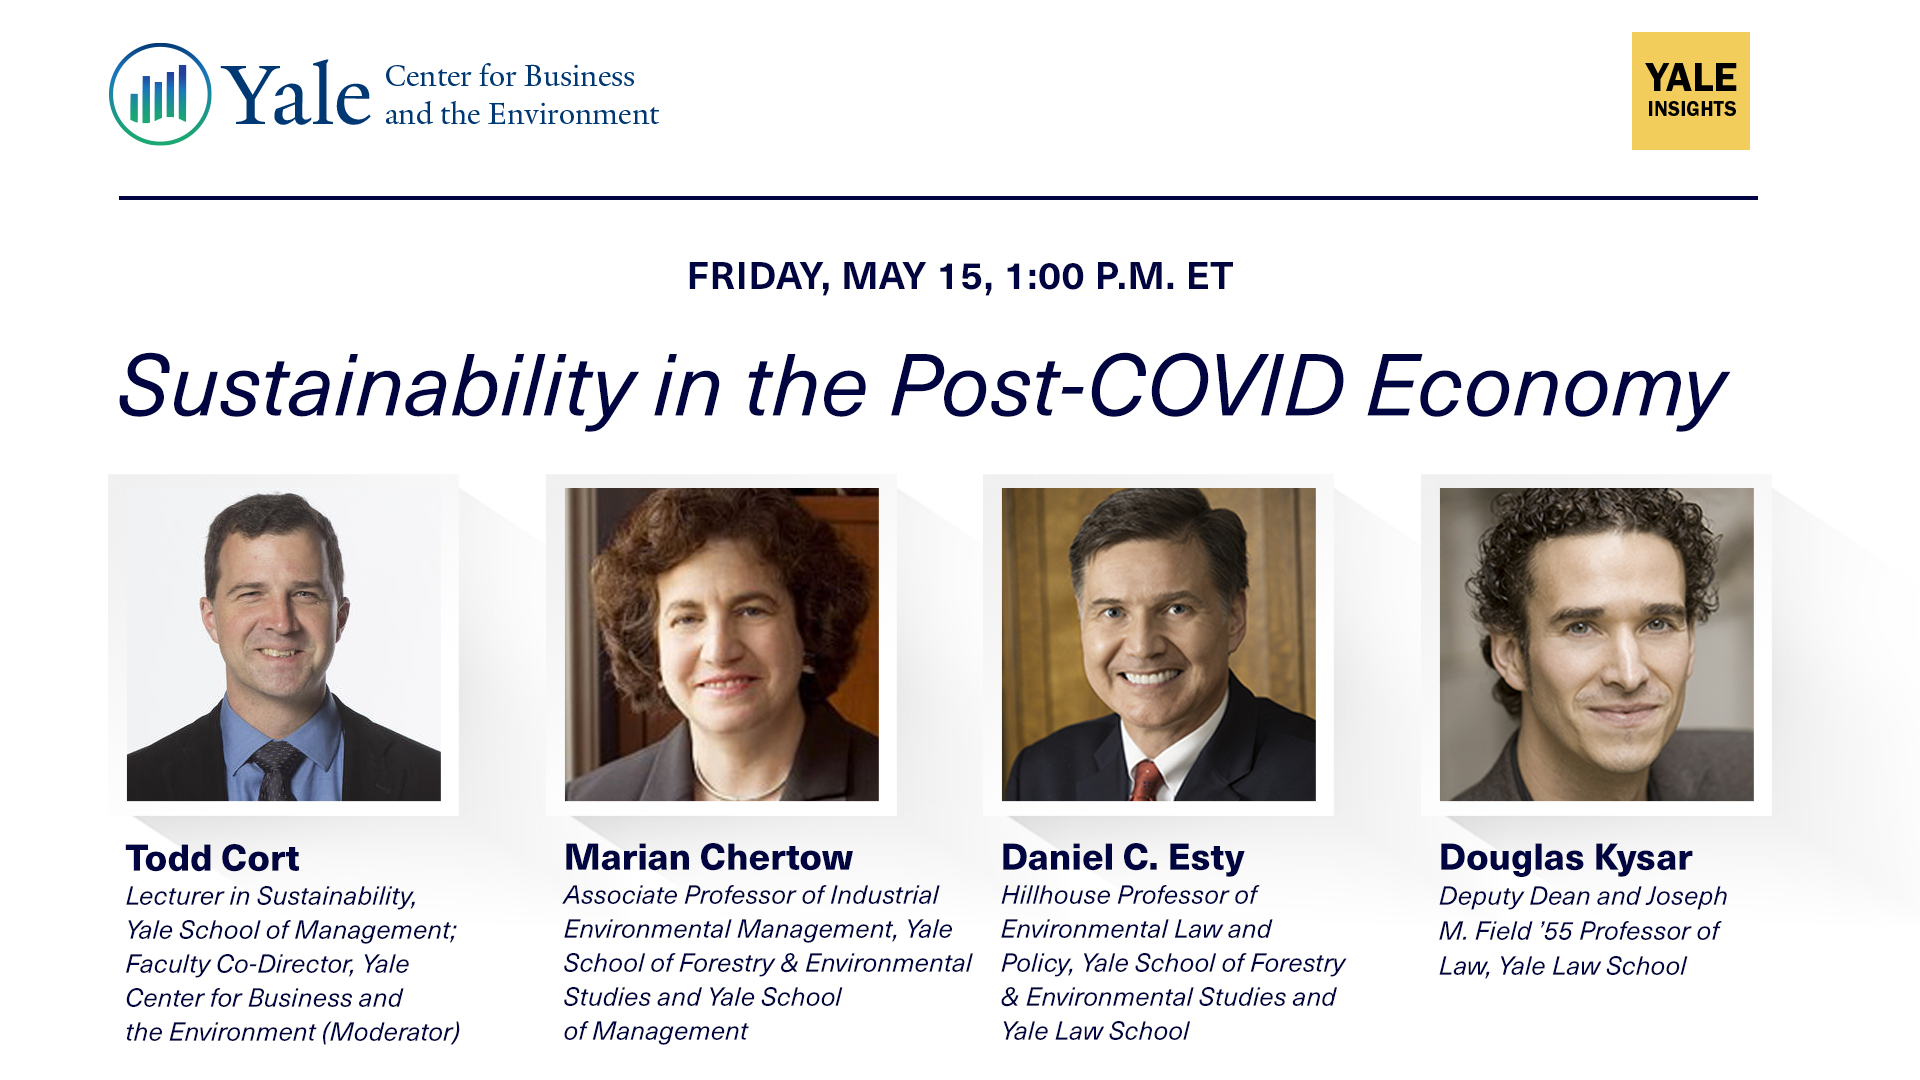 [WEBINAR] Sustainability in the Post-COVID Economy